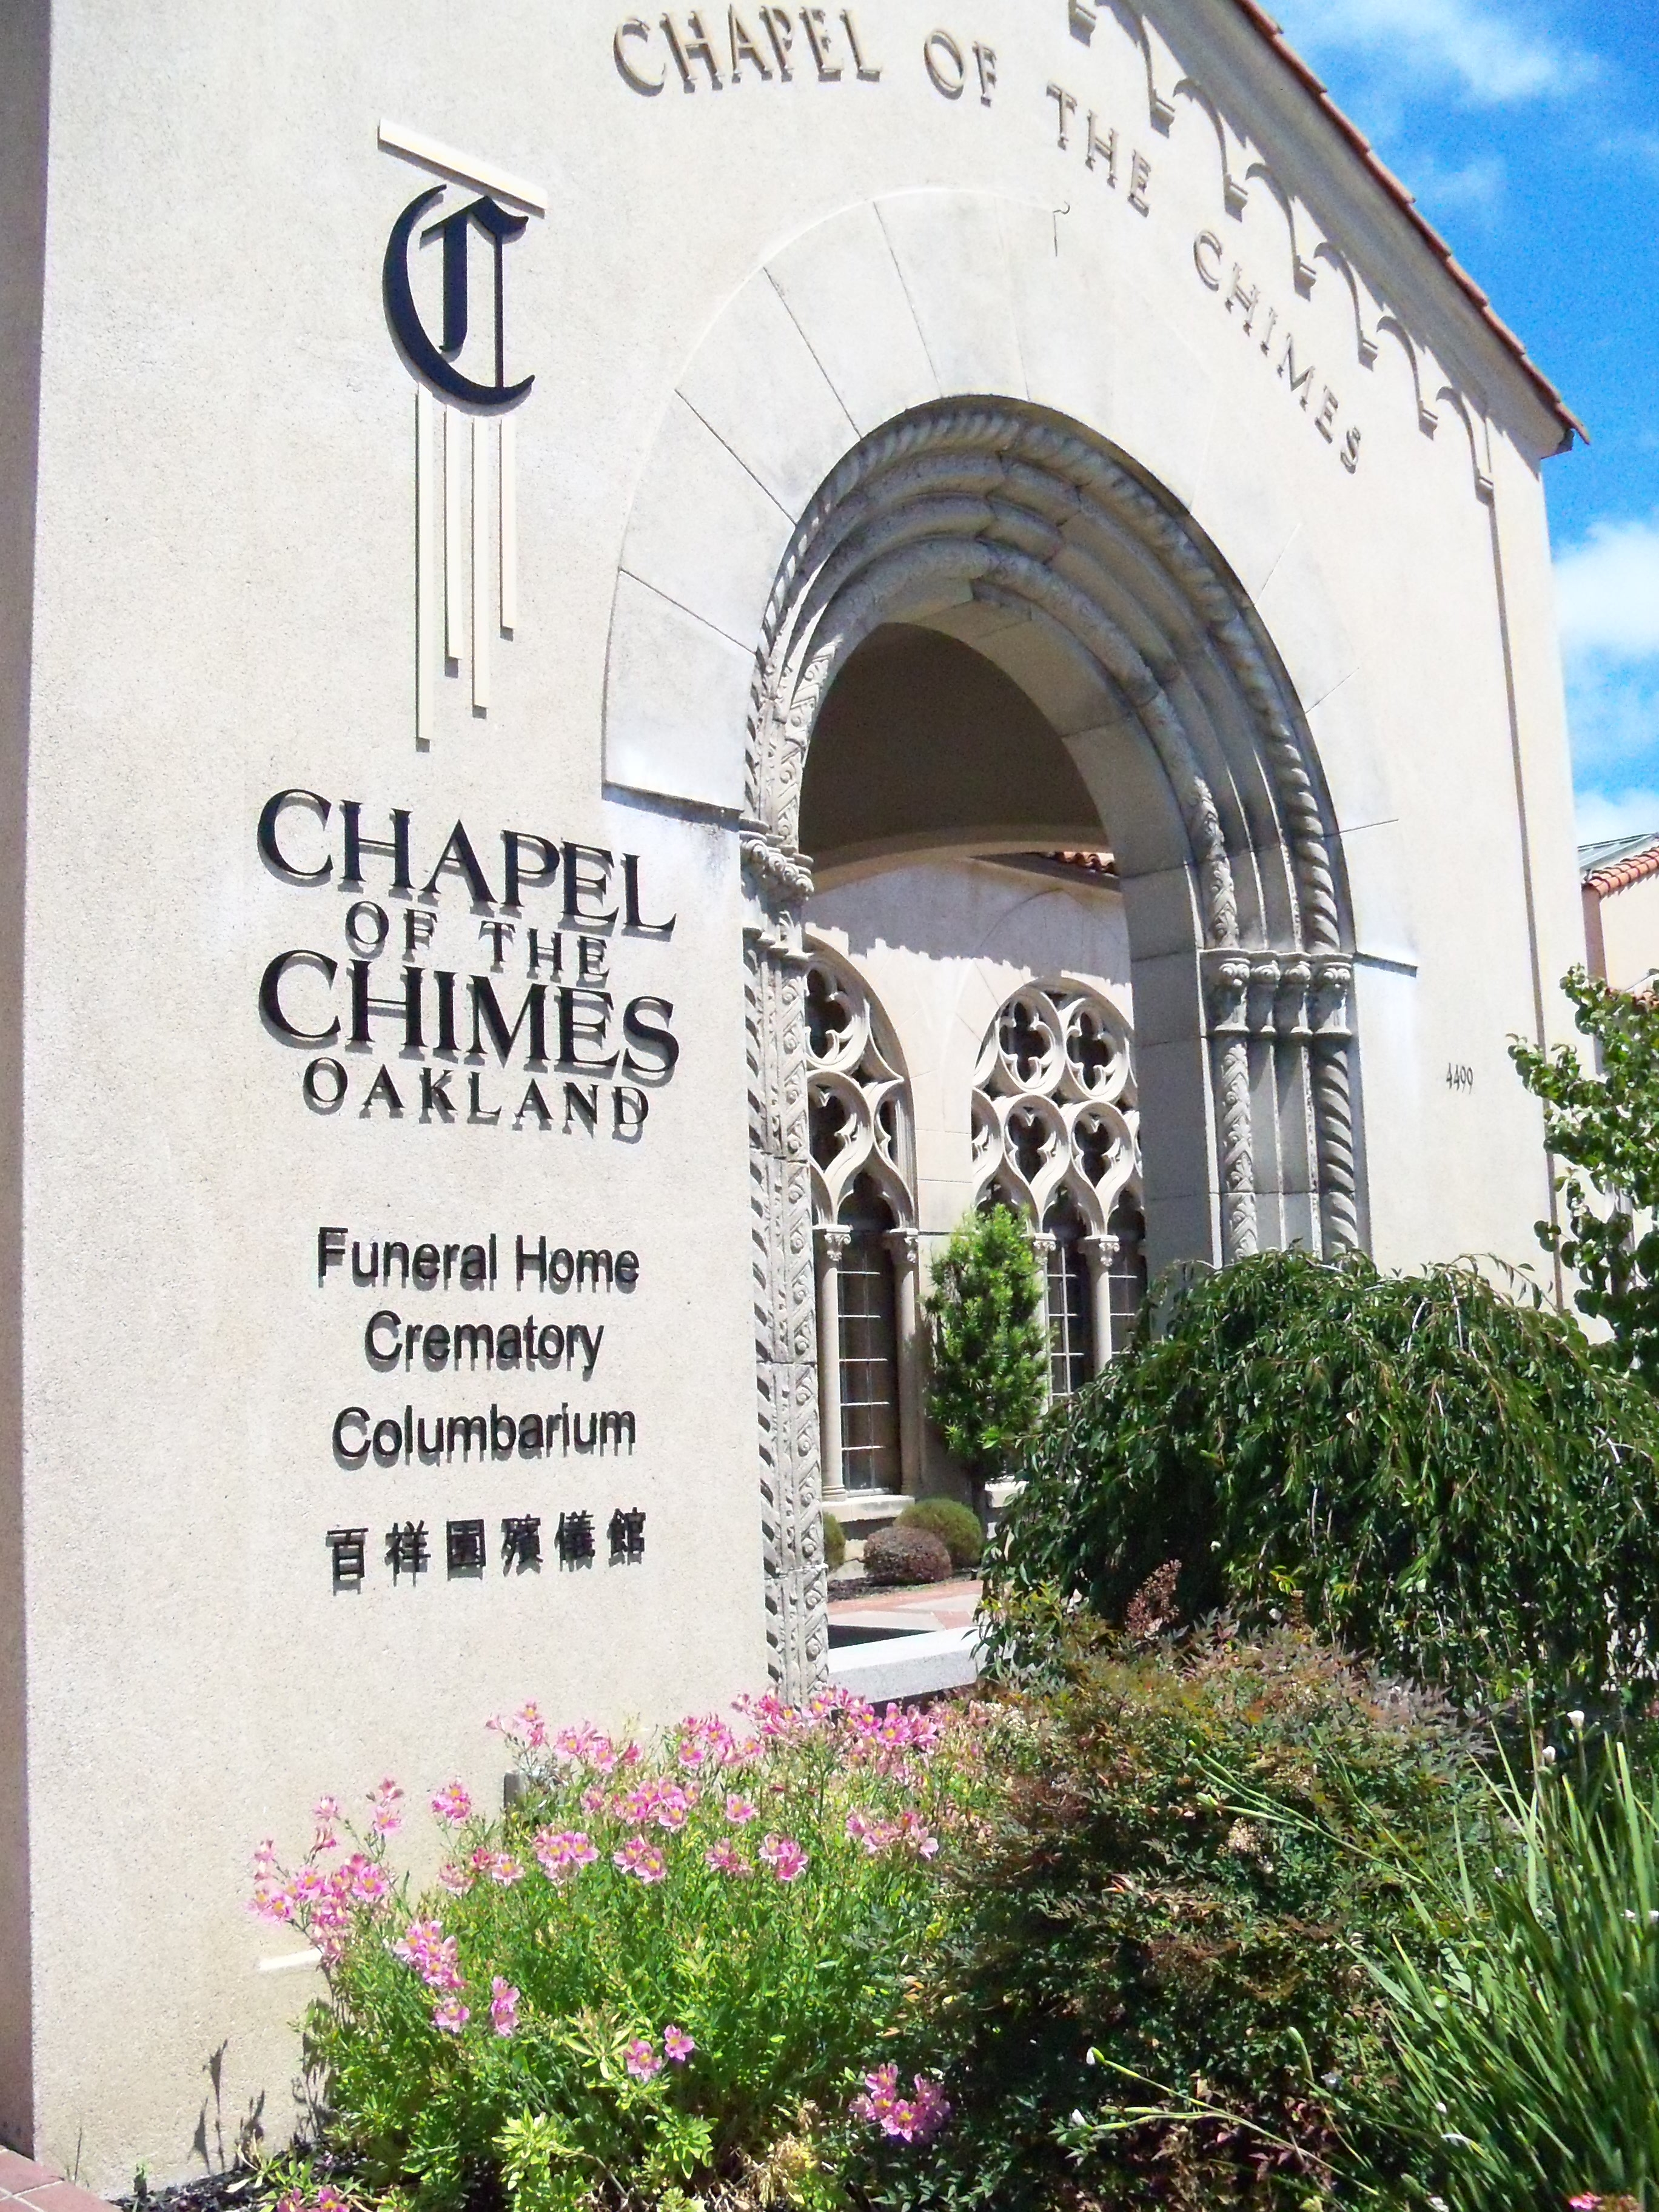 Allison Rodman at Chapel of the Chimes